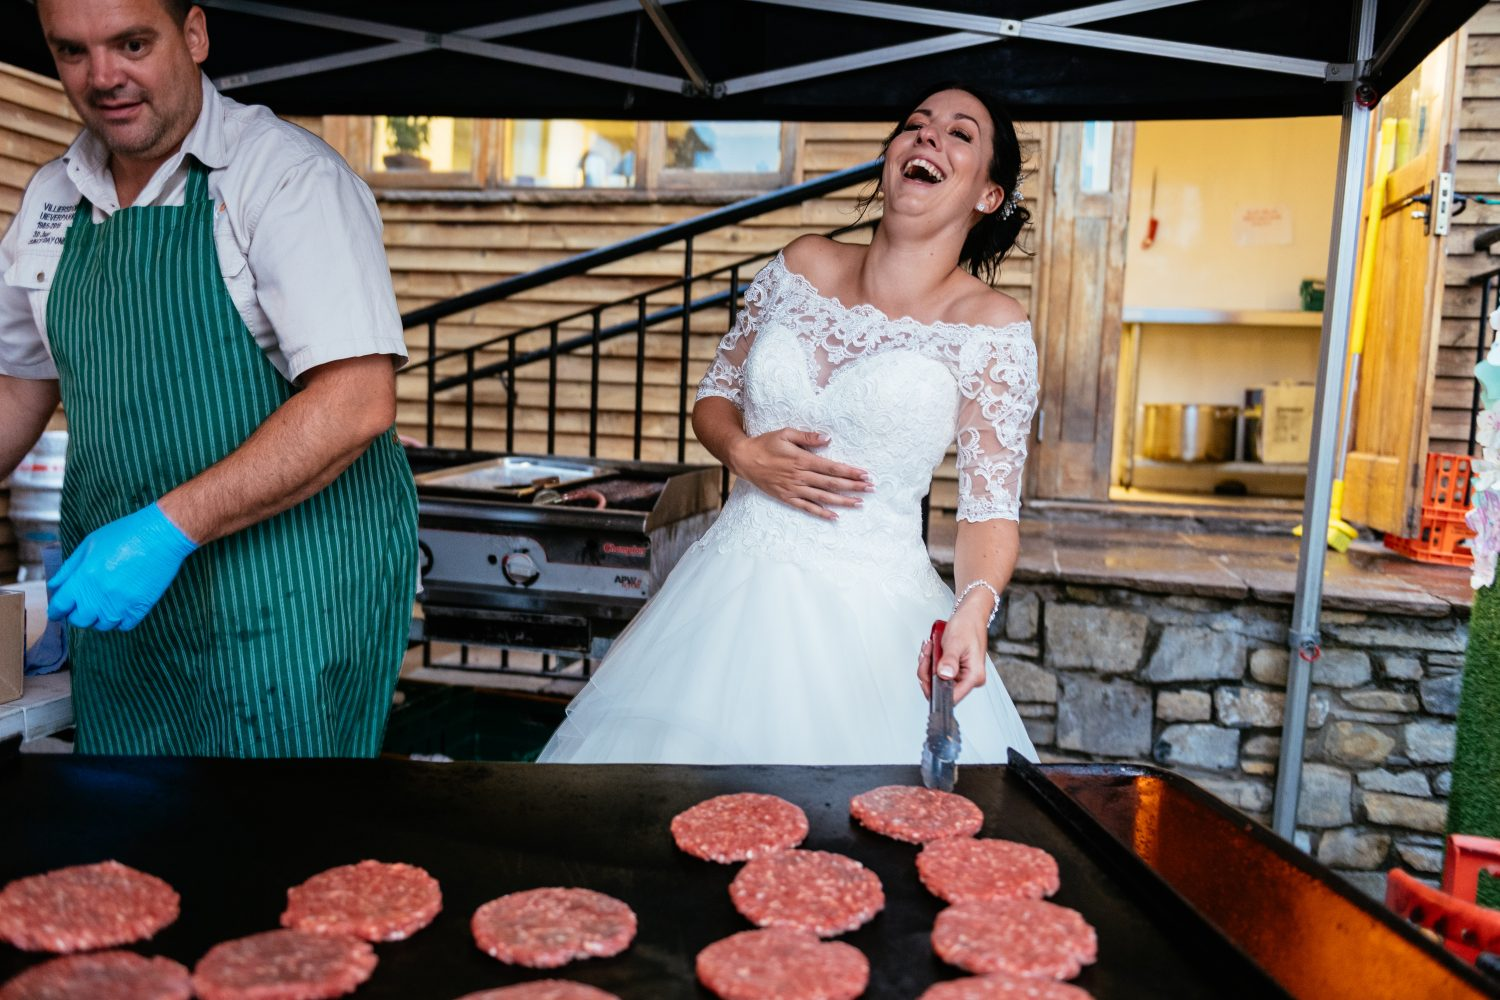 alternative wedding photography ideas - get involved in the kitchen